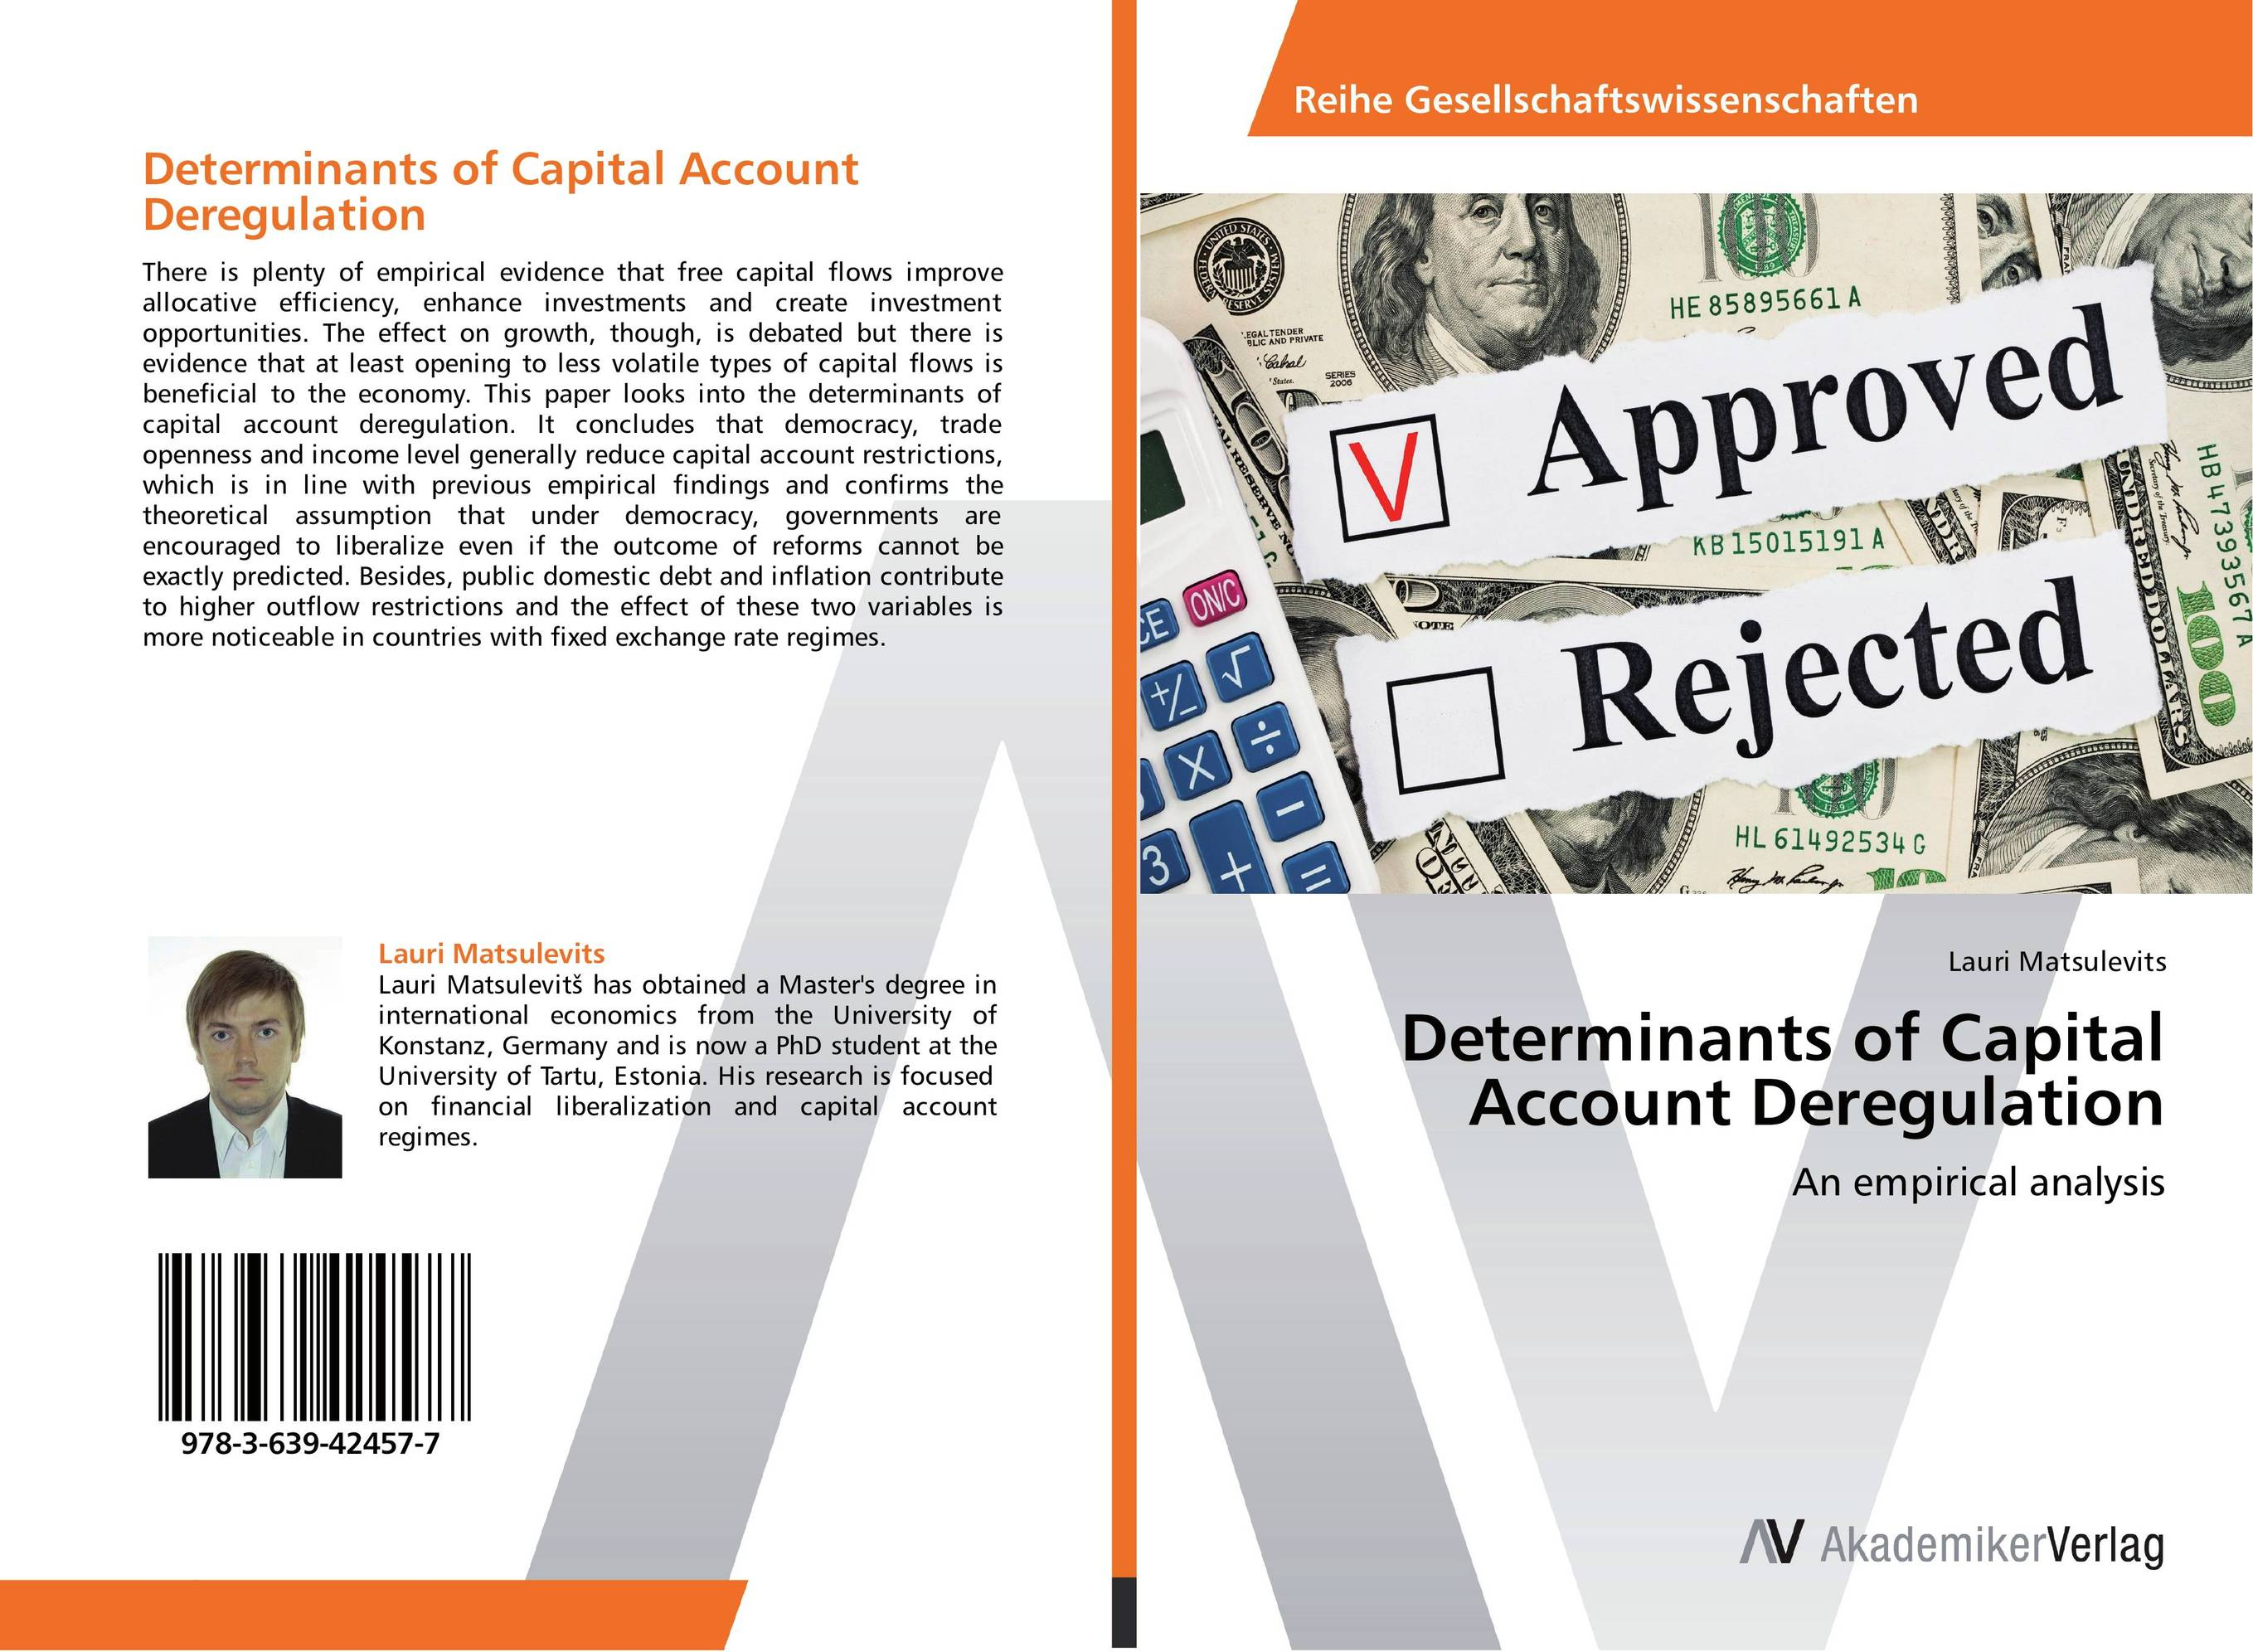 Determinants of Capital Account Deregulation